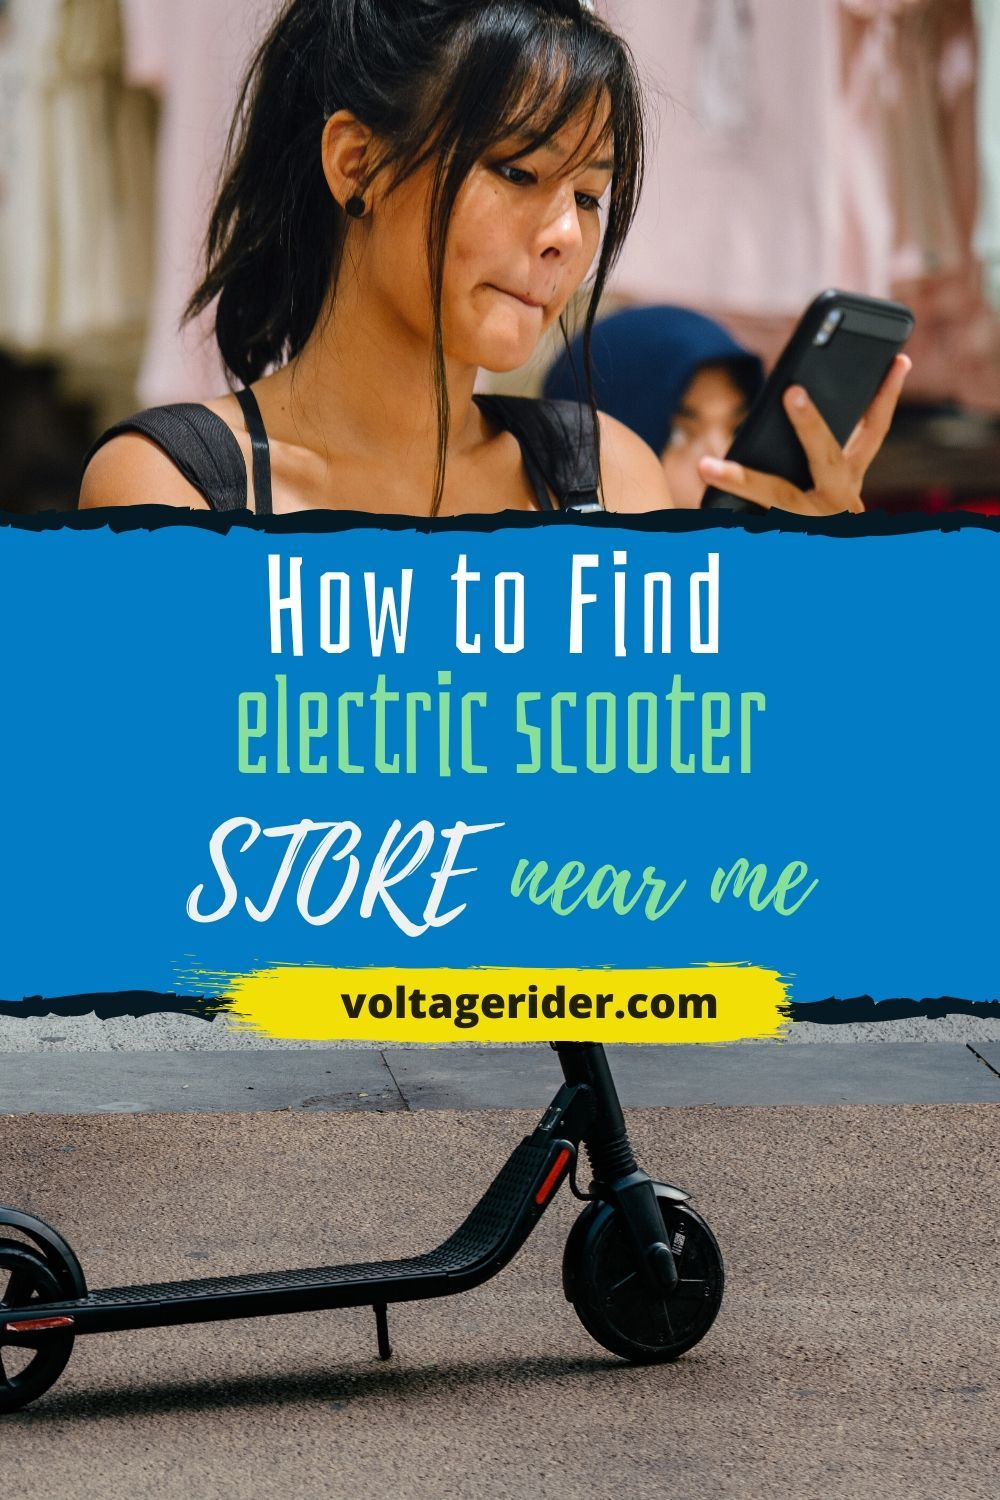 there is a girl on smartphone looking for electric scooter